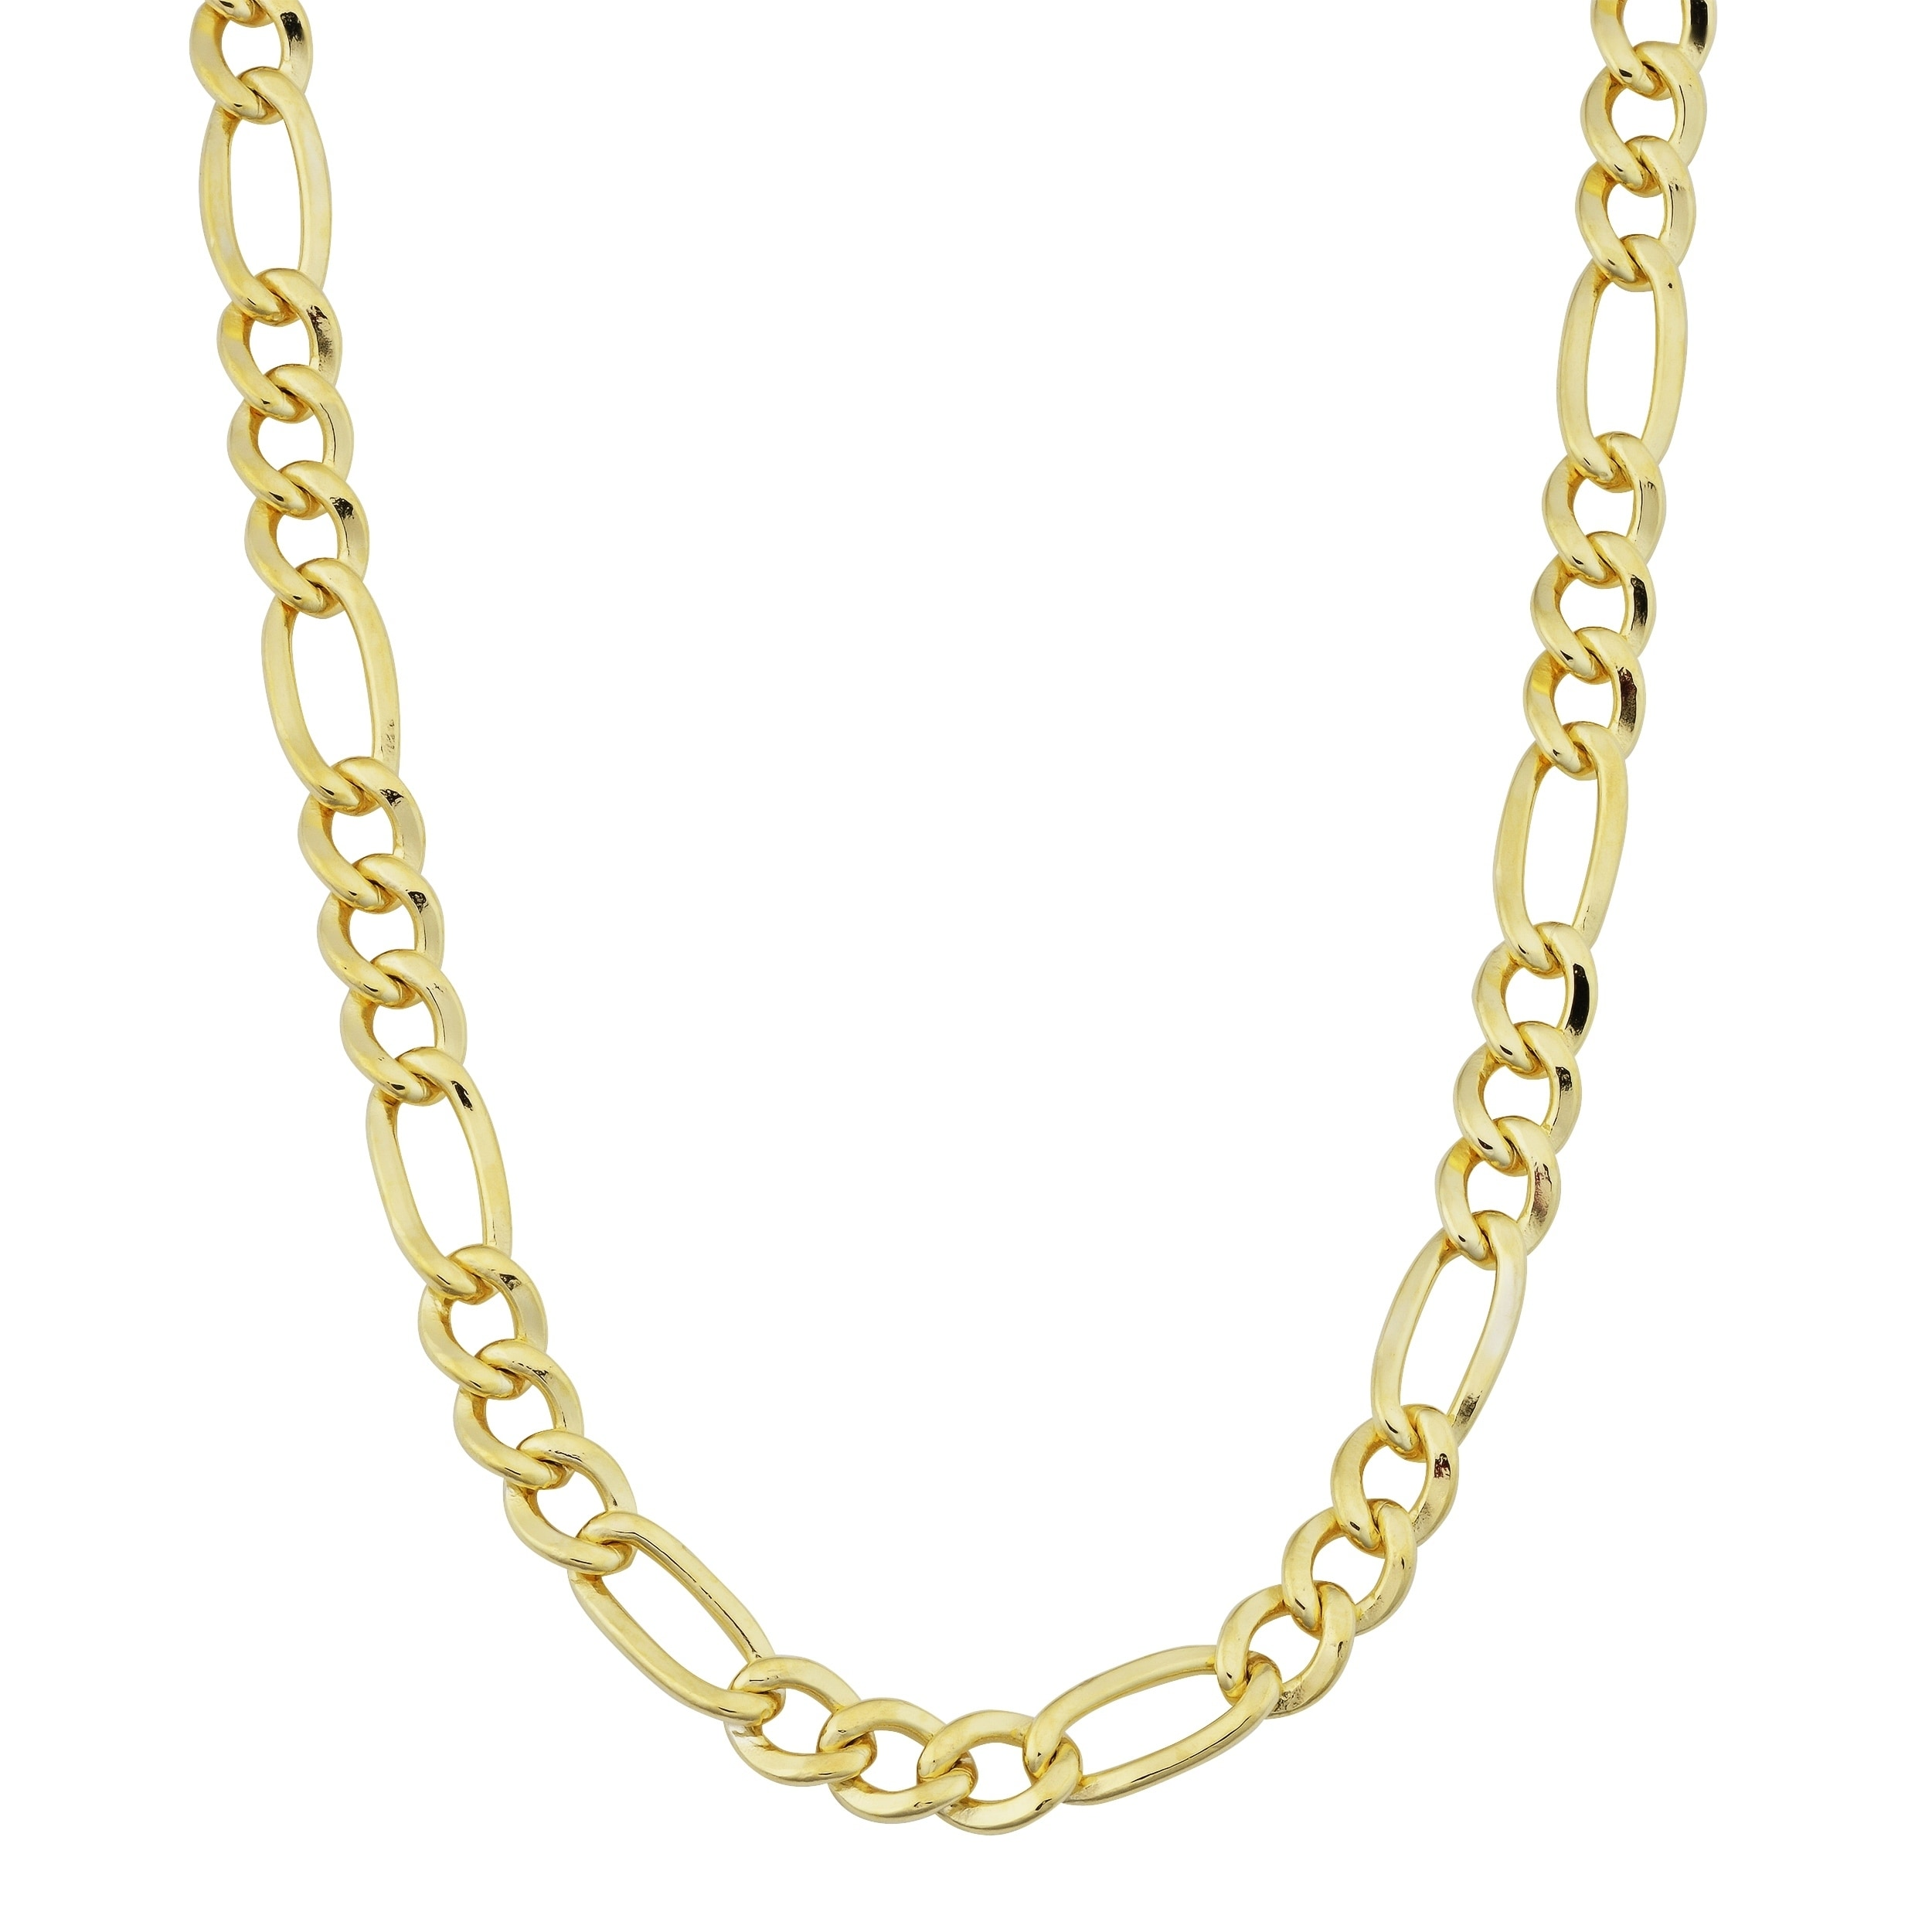 edfbbd458a7b8 14k Yellow Gold-filled Figaro Link Chain Necklace (18-36 inches)